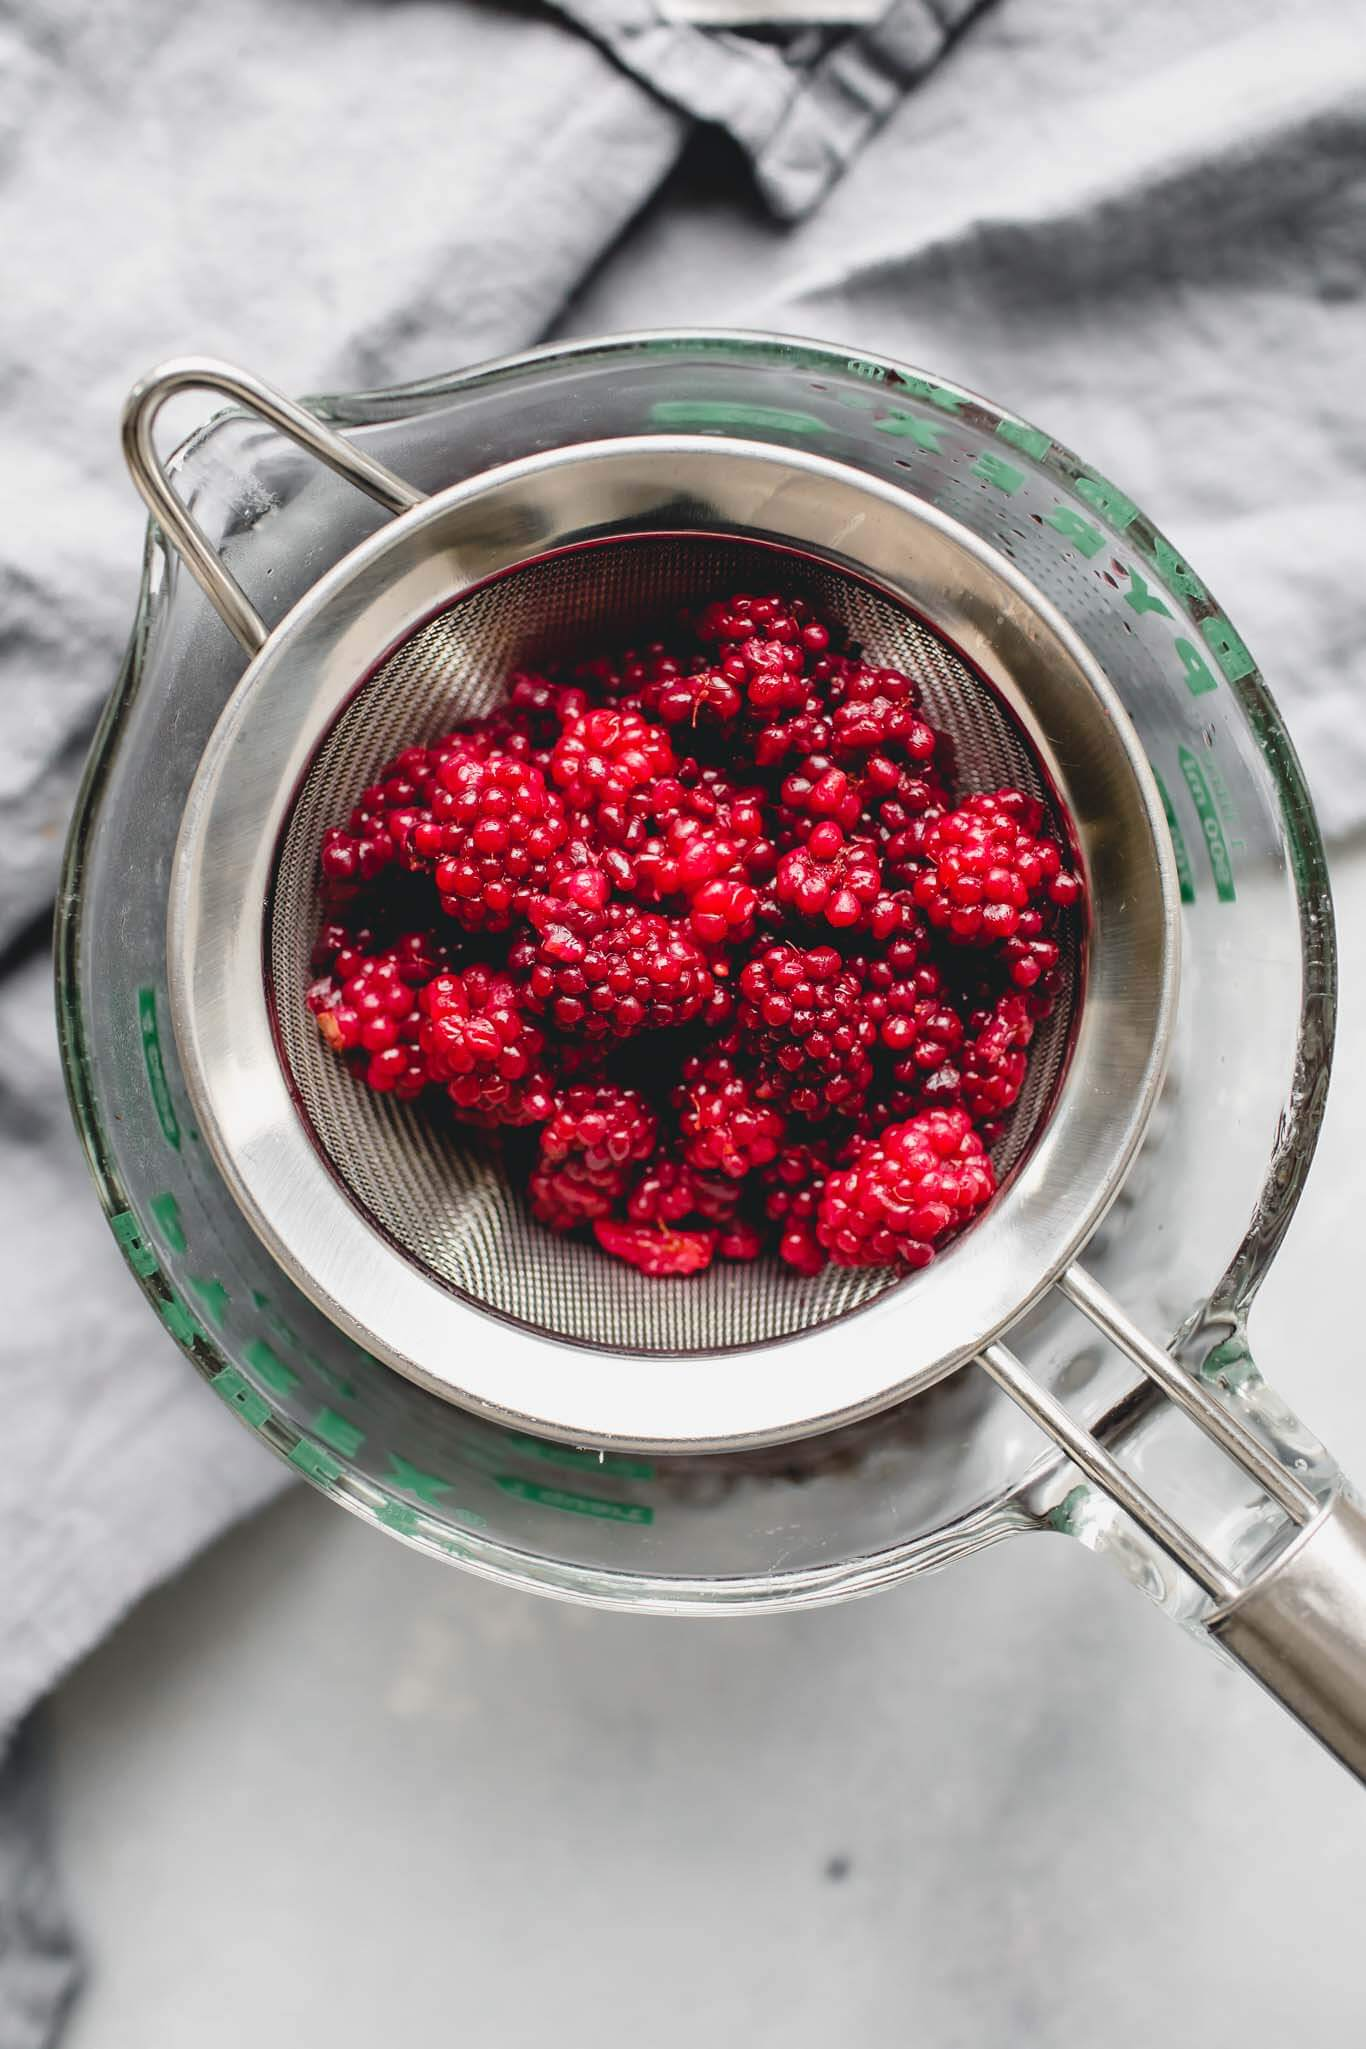 Blackberries in strainer.